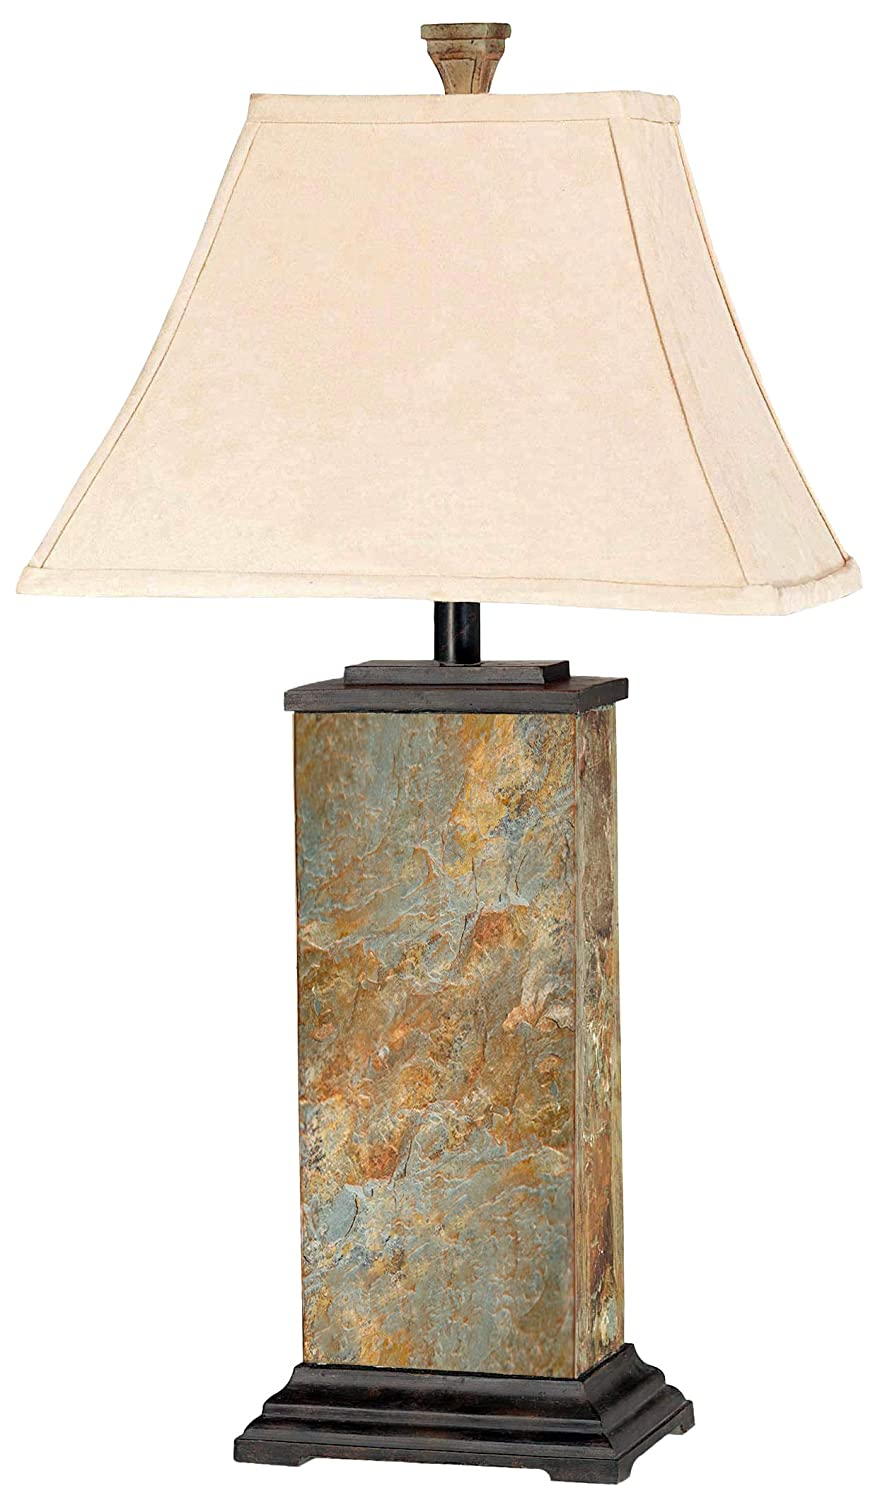 Kenroy Home 31202 Bennington Table Lamp Natural Slate Finish